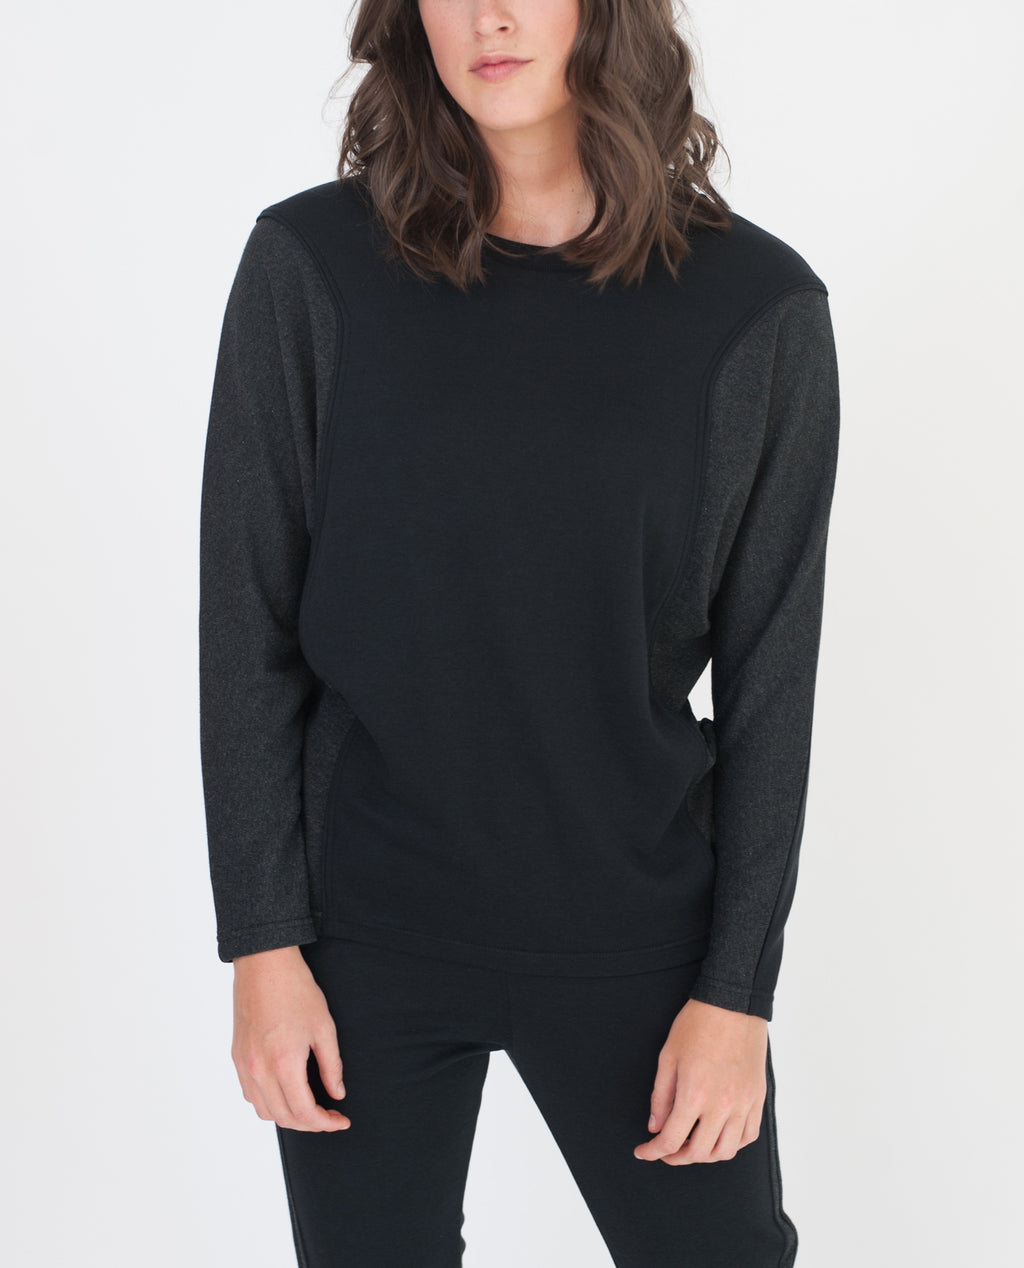 ADLEY Lyocell And Cotton Top In Black And Dark Grey